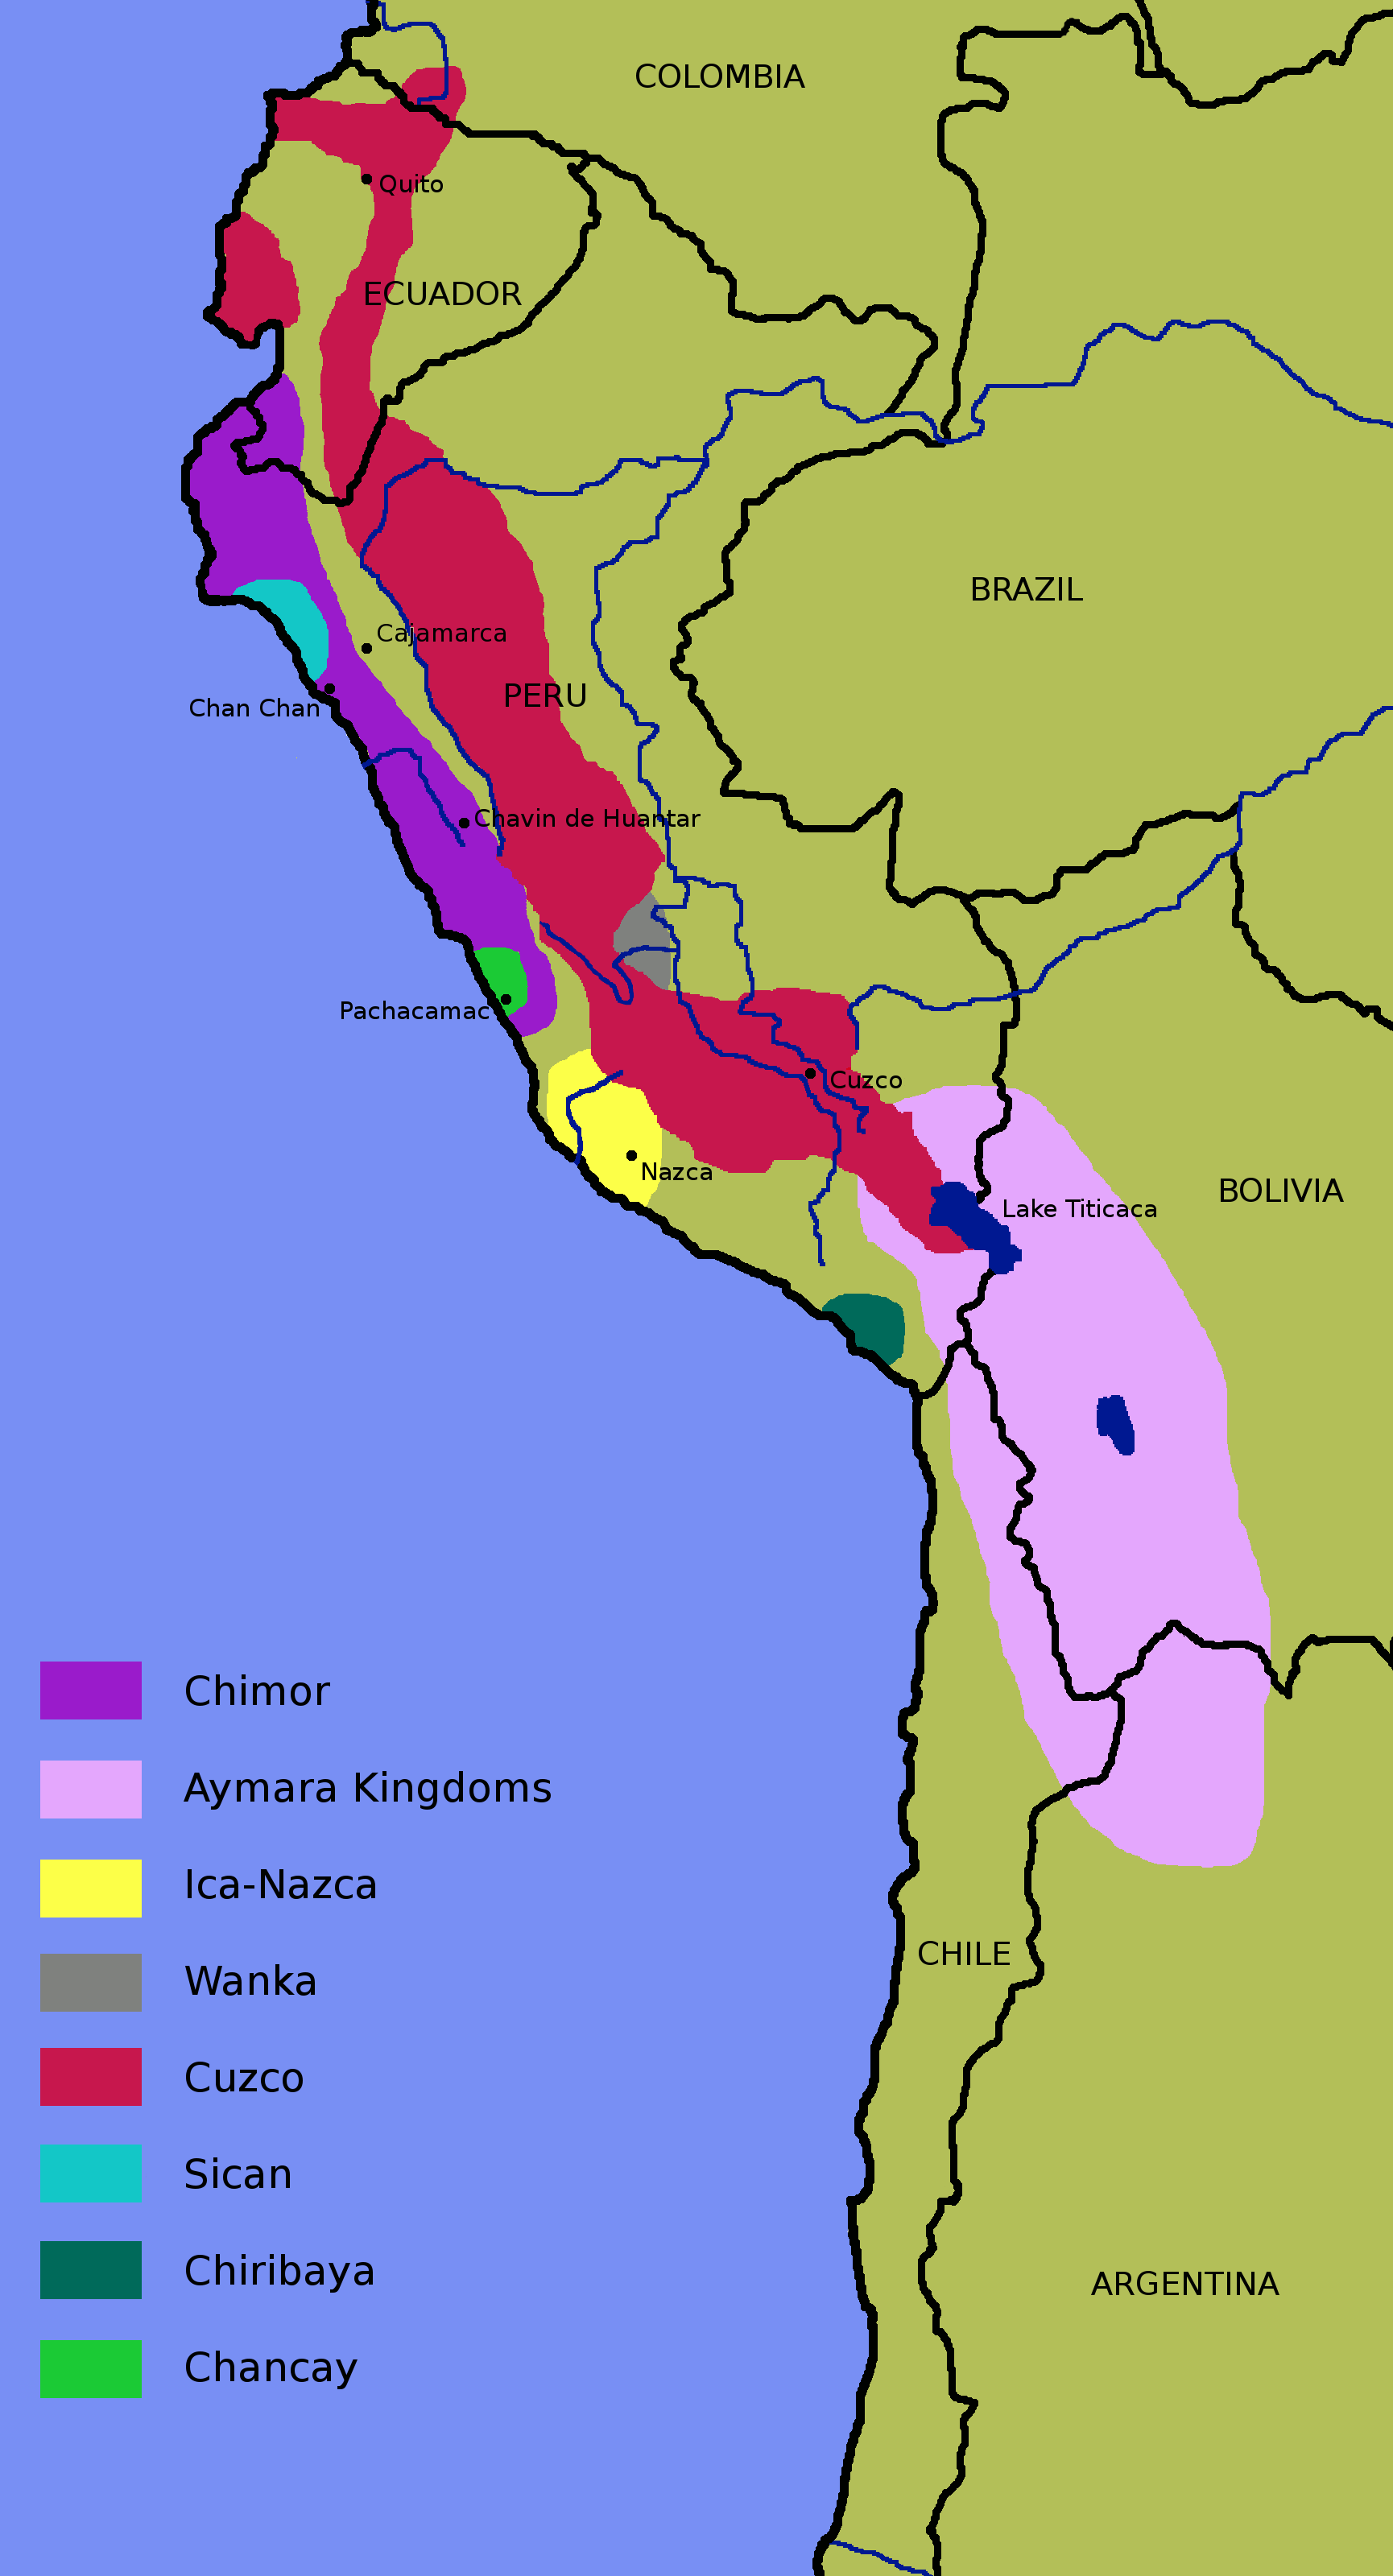 nature of aztec and incas conquests What are the similarities and differences between the aztec and inca what are the similarities and differences between the conquest of aztec and inca empires.